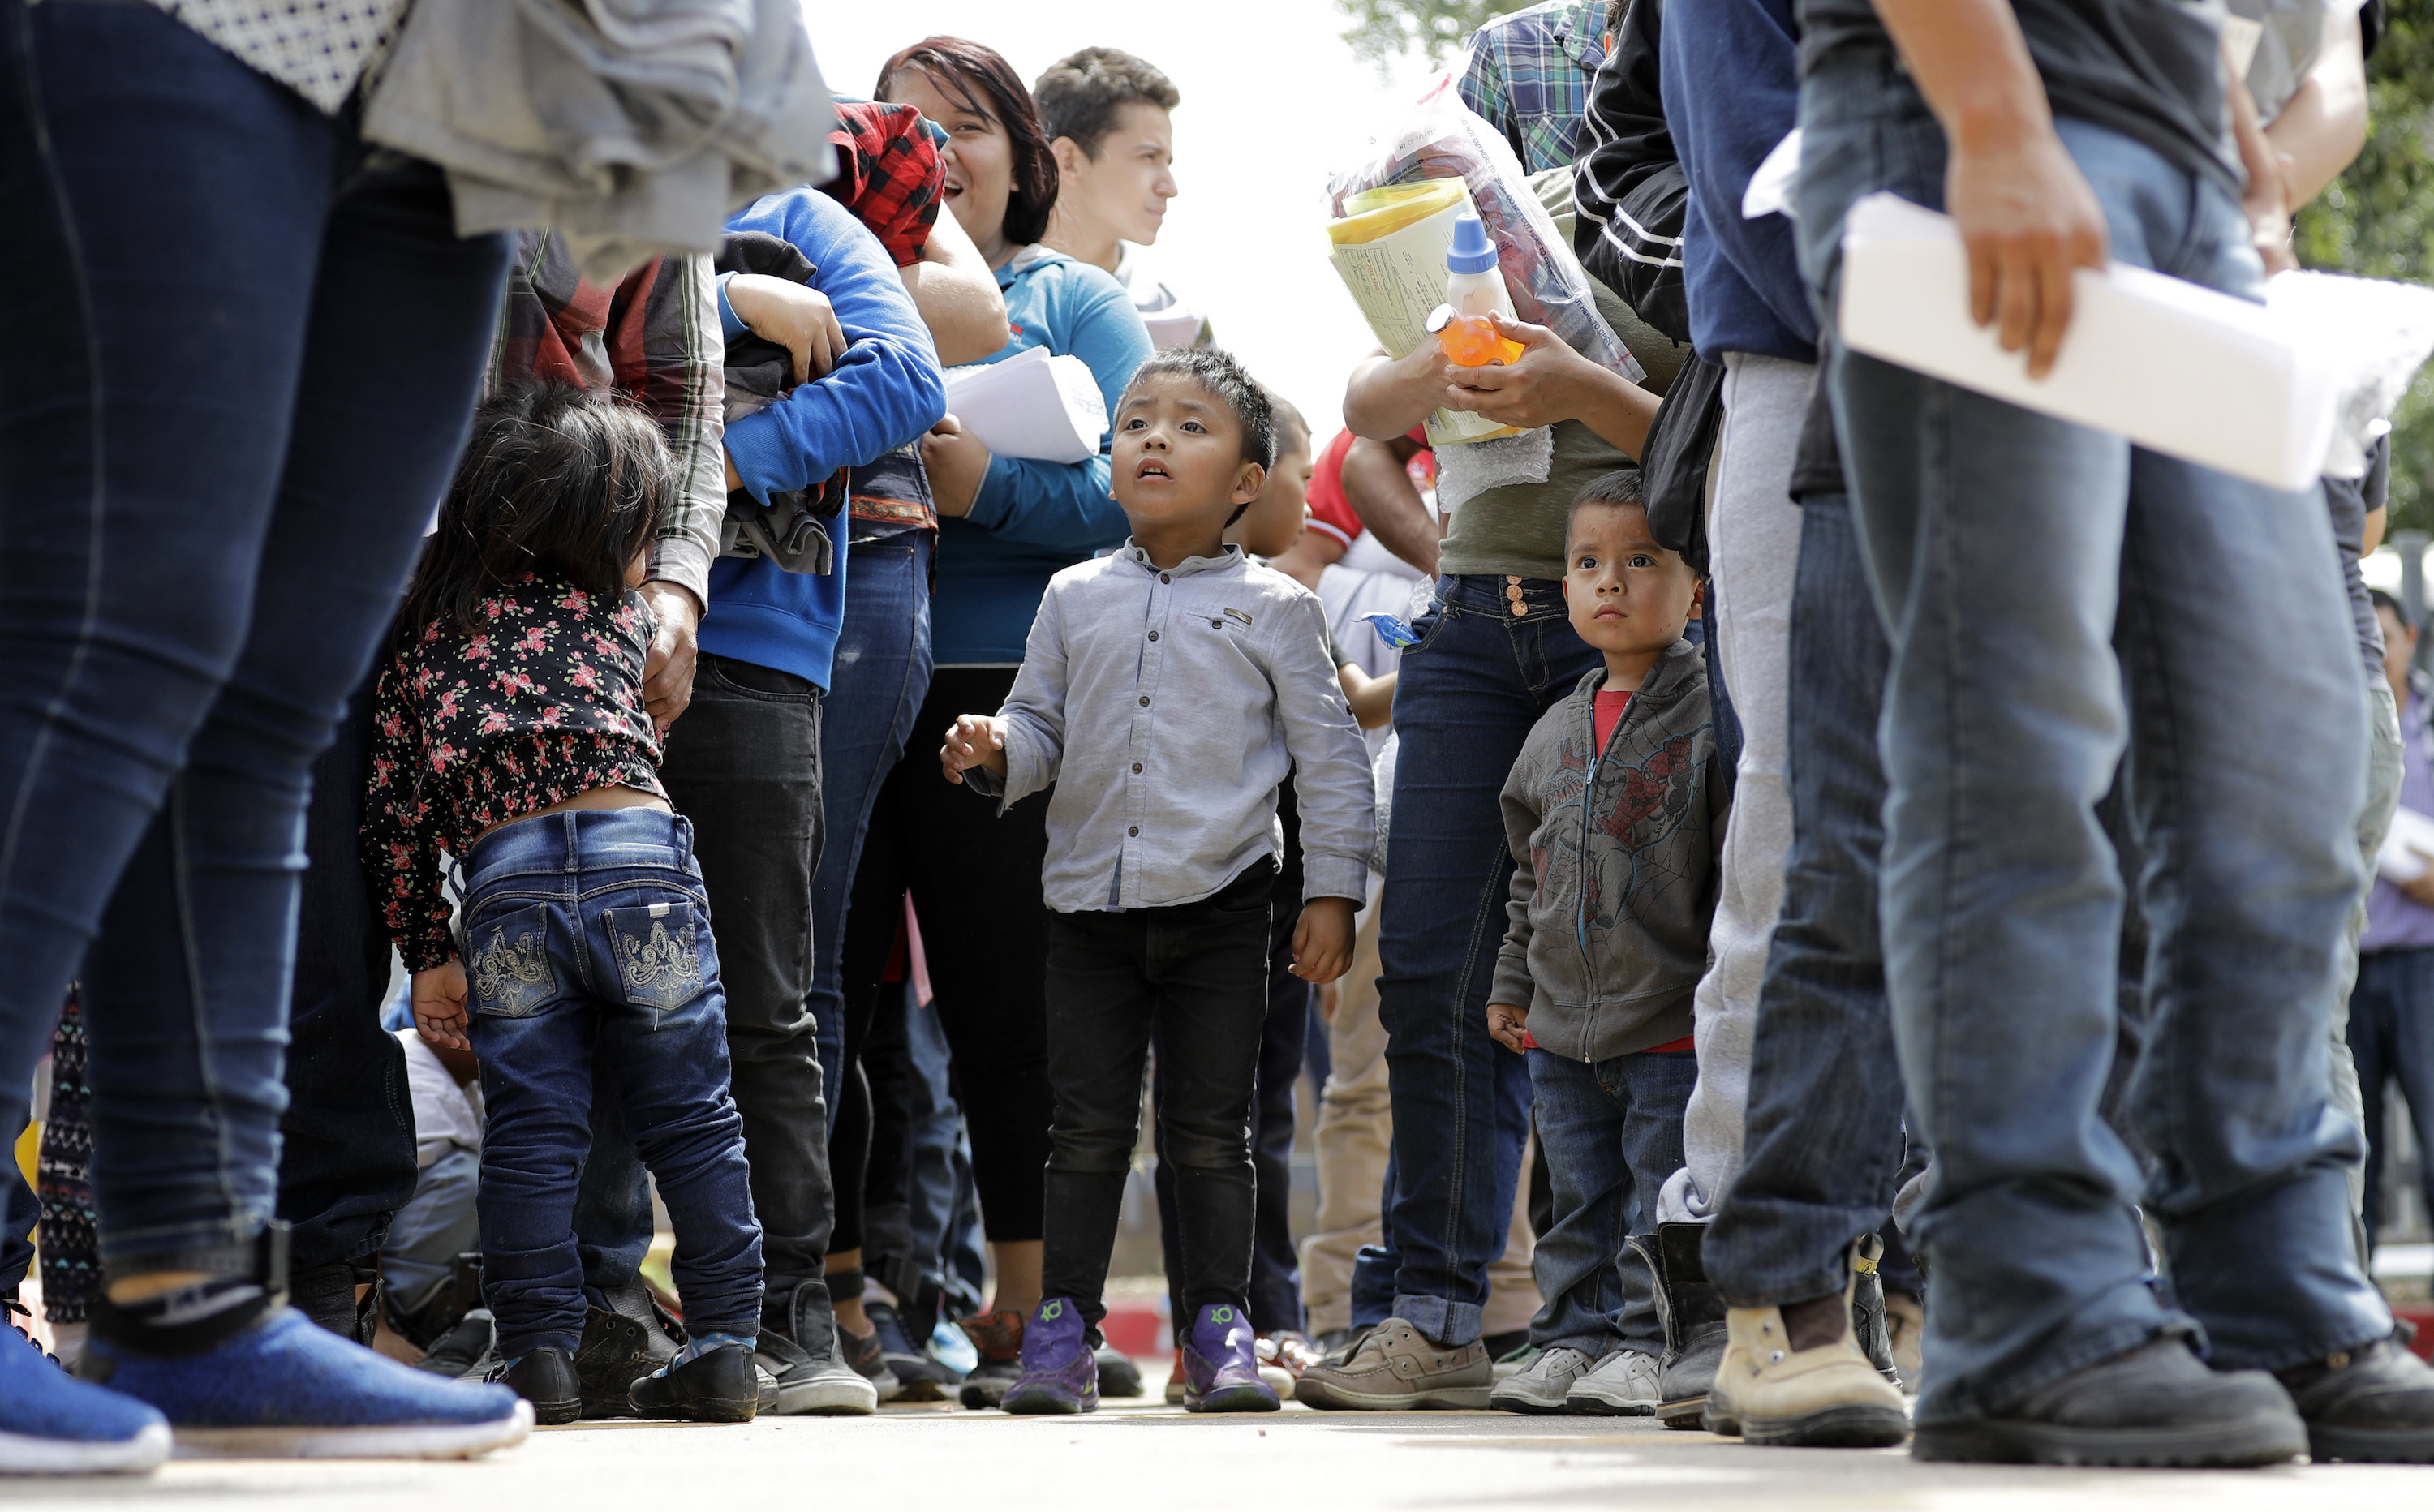 <p>Immigrant families line up to enter the central bus station after they were processed and released by U.S. Customs and Border Protection, Sunday, June 24, 2018, in McAllen, Texas. </p>